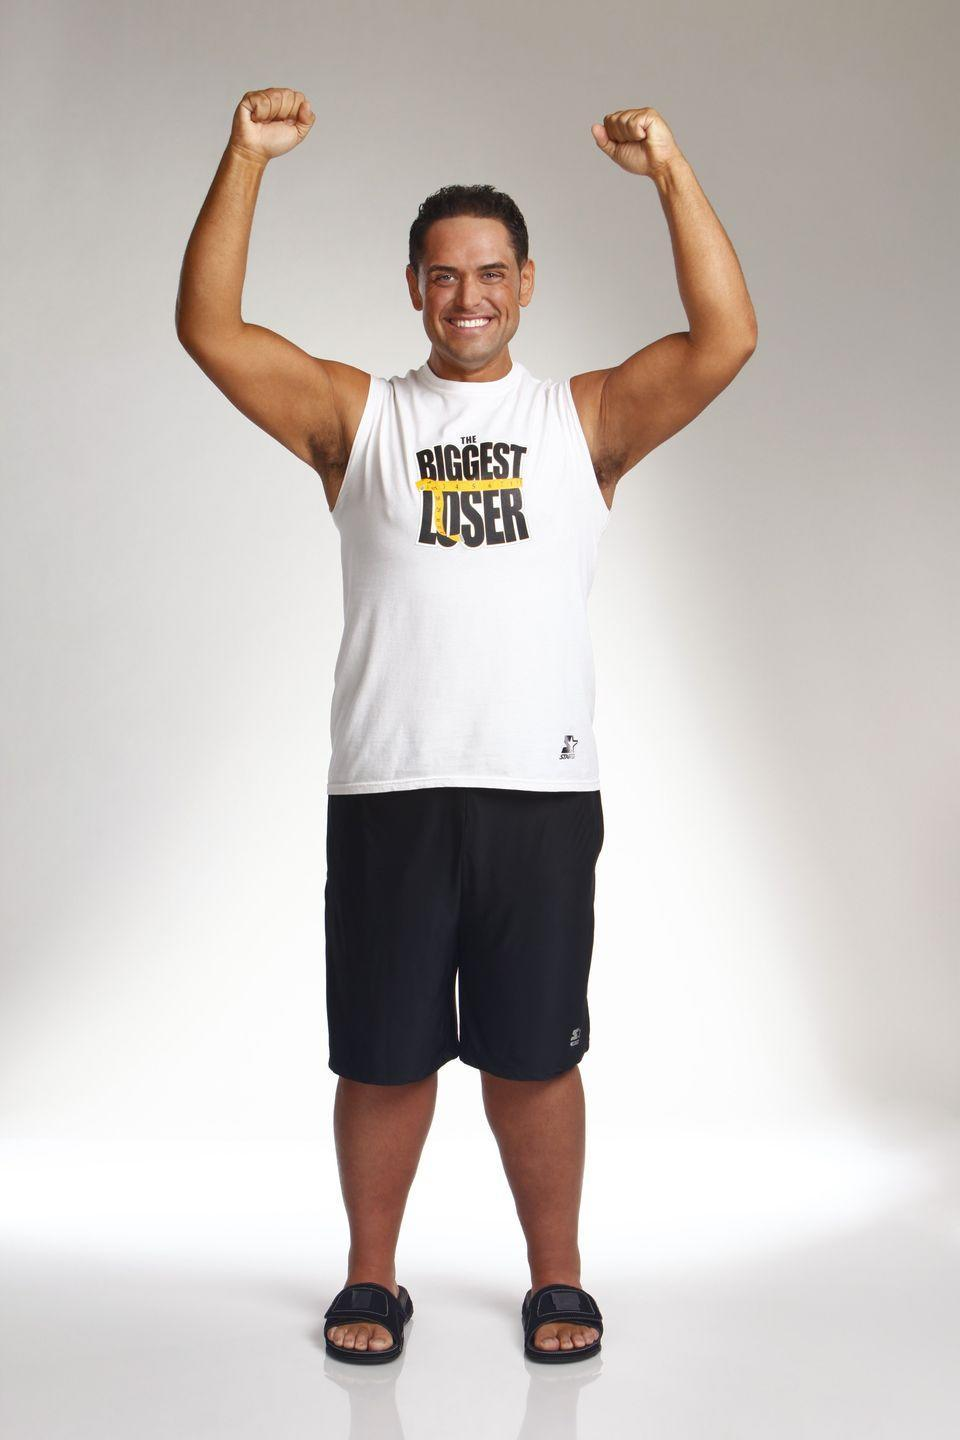 <p>Michael lost an amazing 264 pounds, or half of his body weight. He ended up breaking Danny Cahill's previous record of 239 pounds lost at the finale.</p>